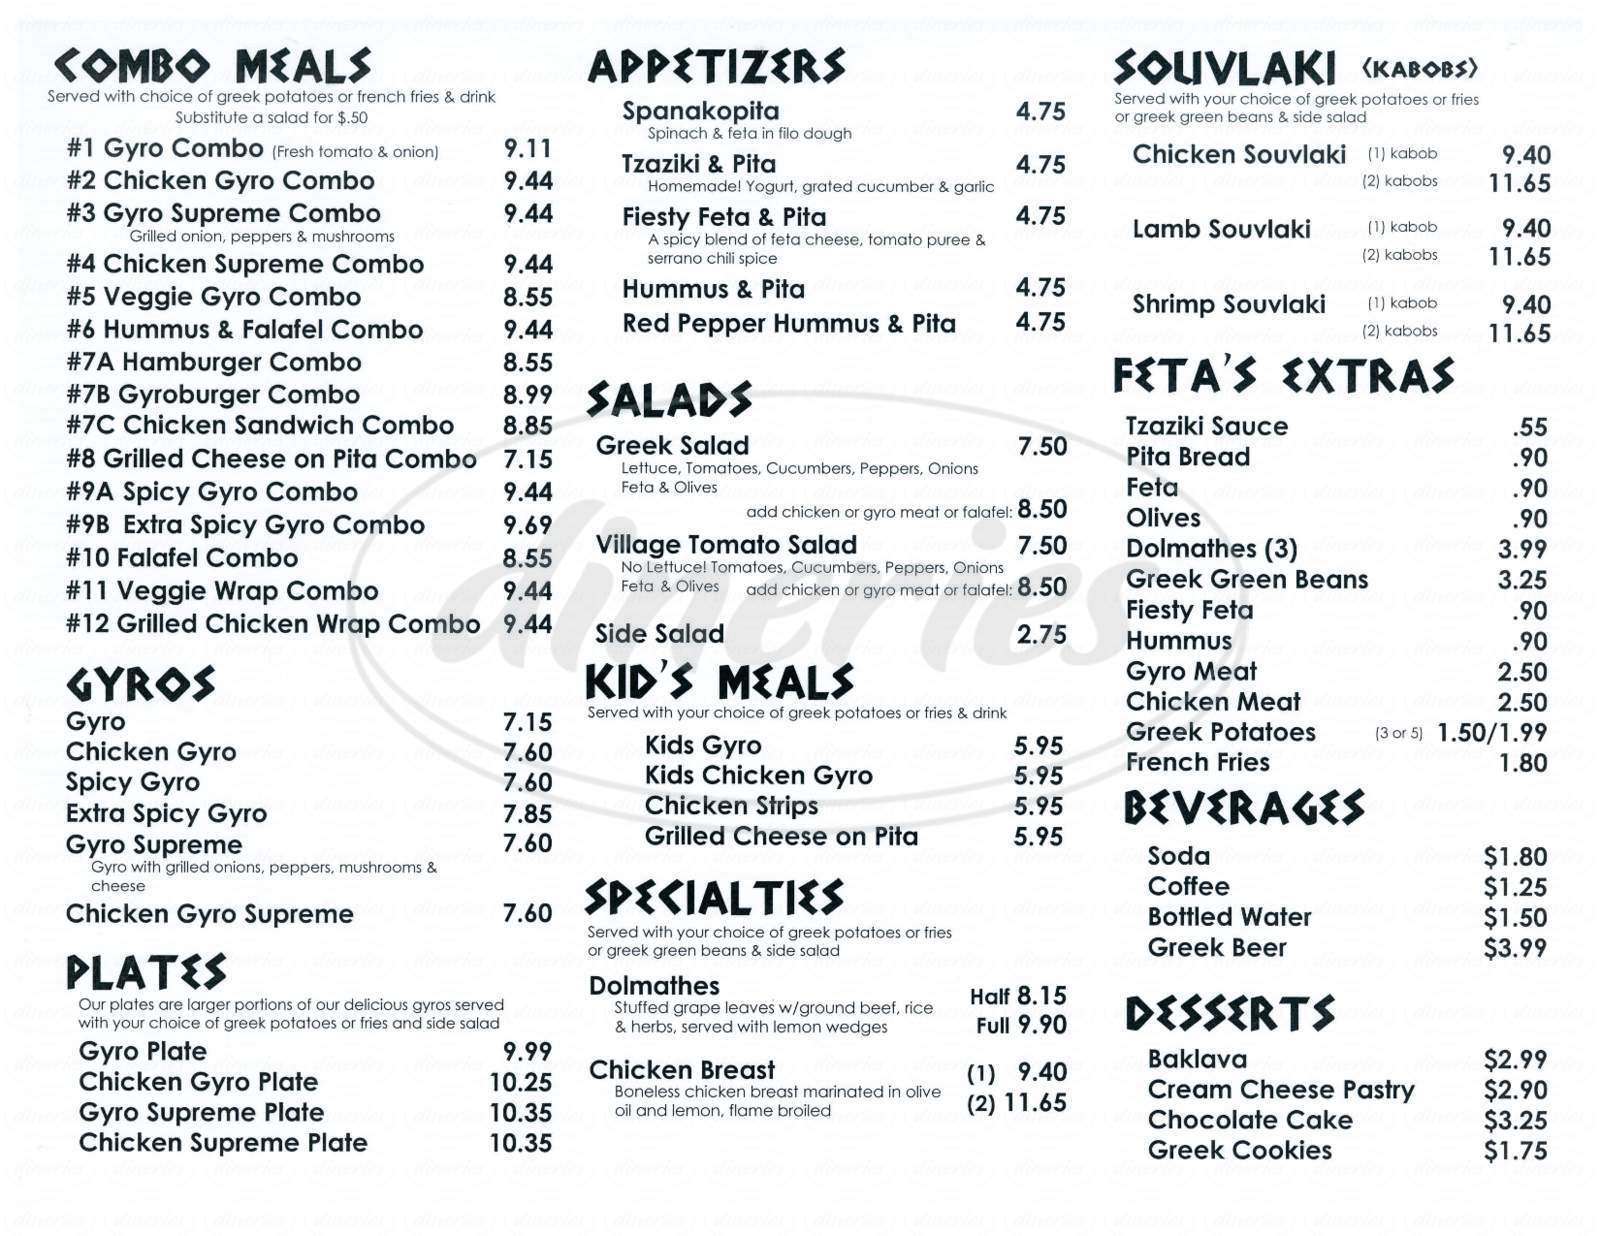 menu for Feta's Gyros and Catering